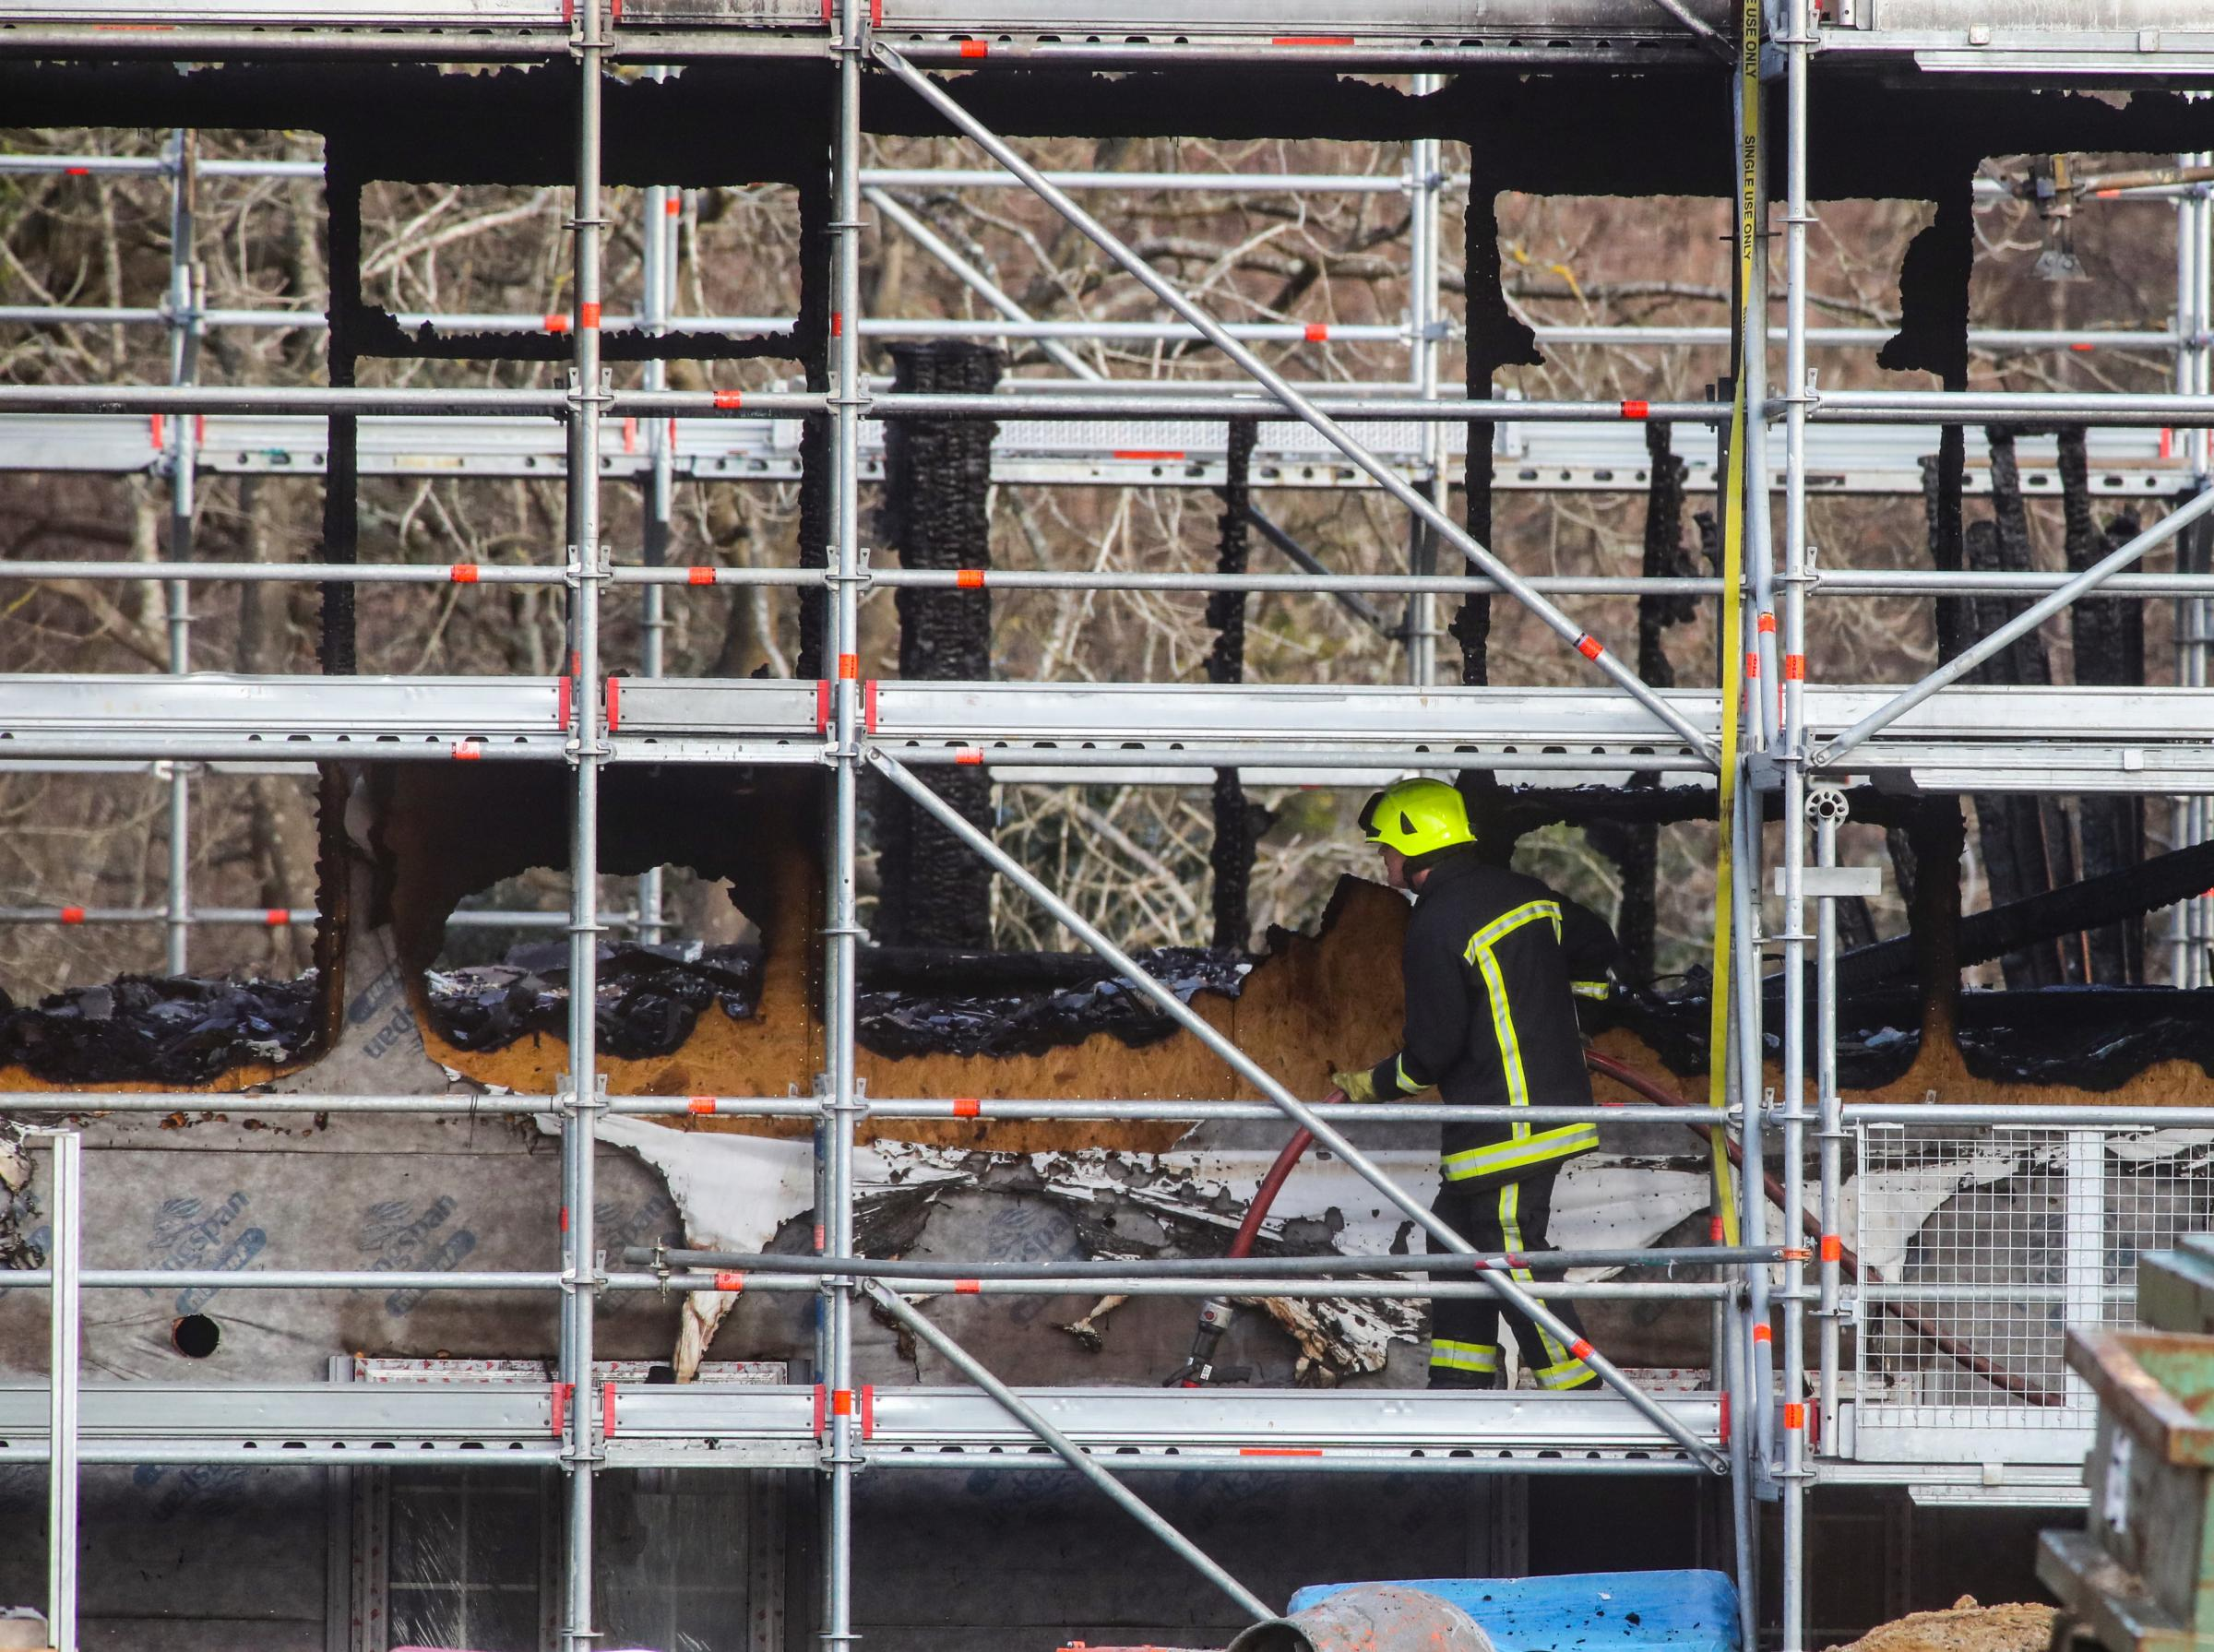 Firemen at the scene of a major fire at the building site on January 6.